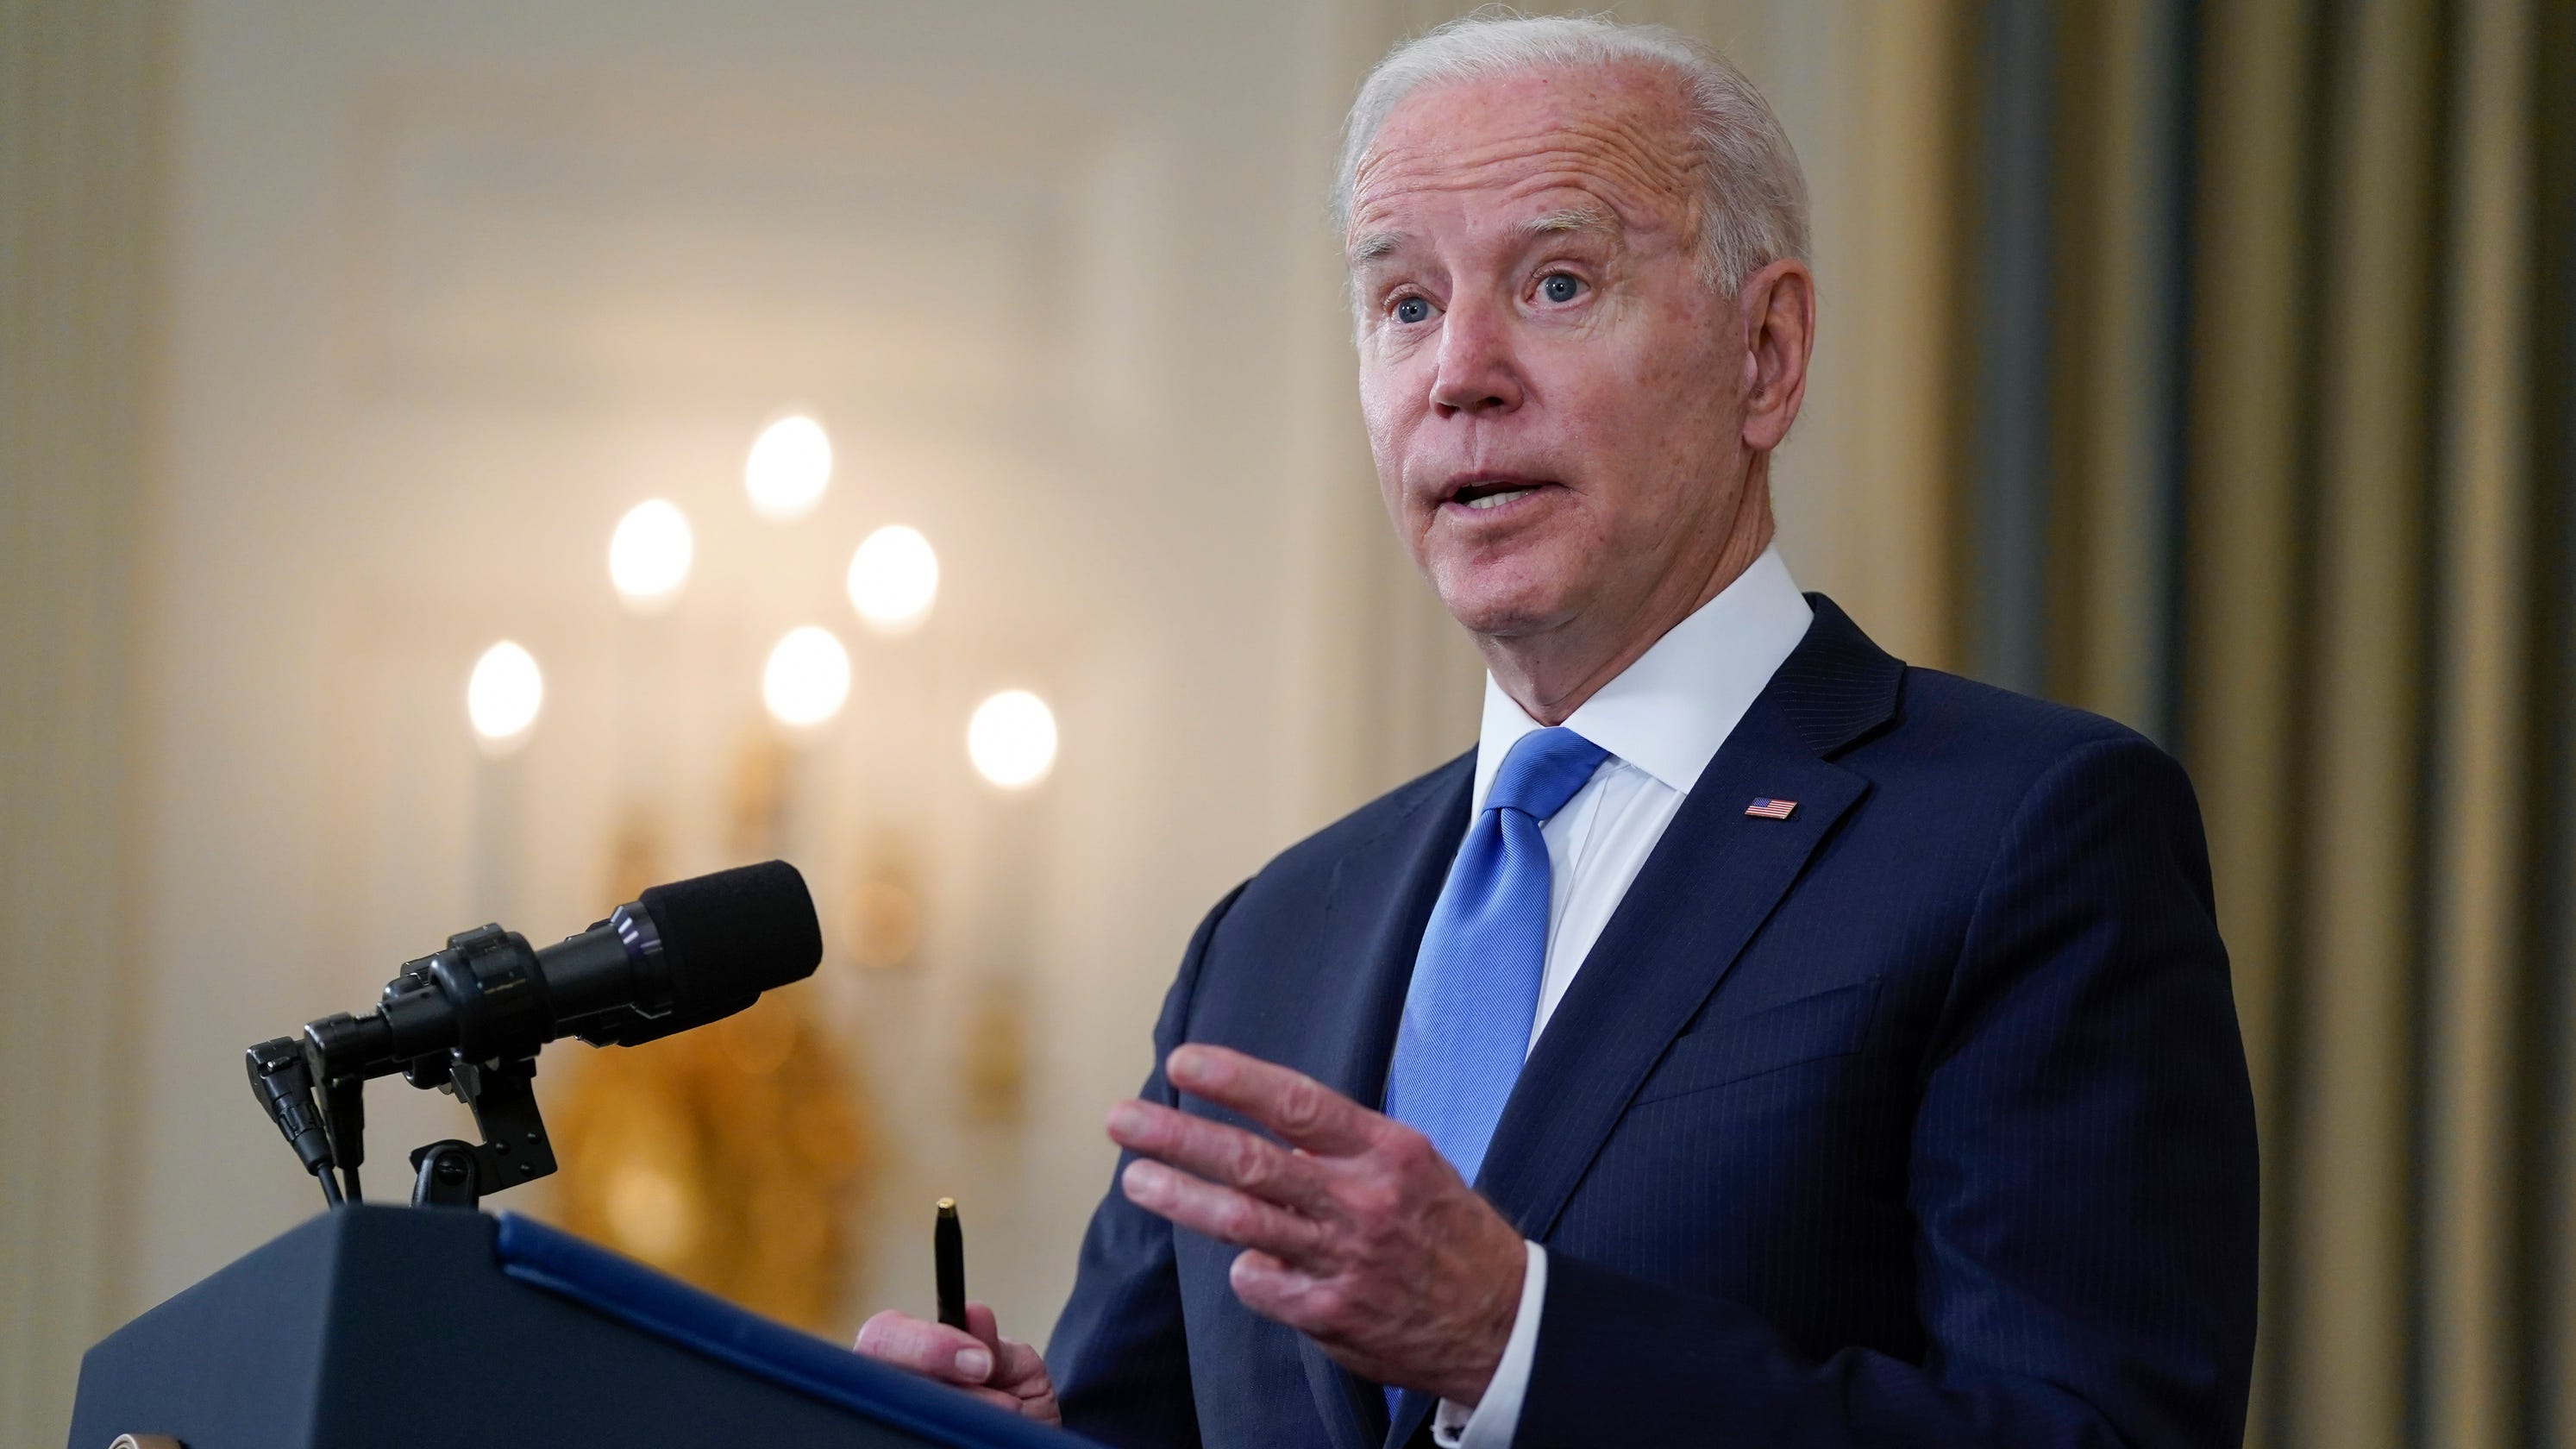 'I don't understand the Republicans': Joe Biden says GOP in middle of 'mini-revolution' amid Cheney dustup